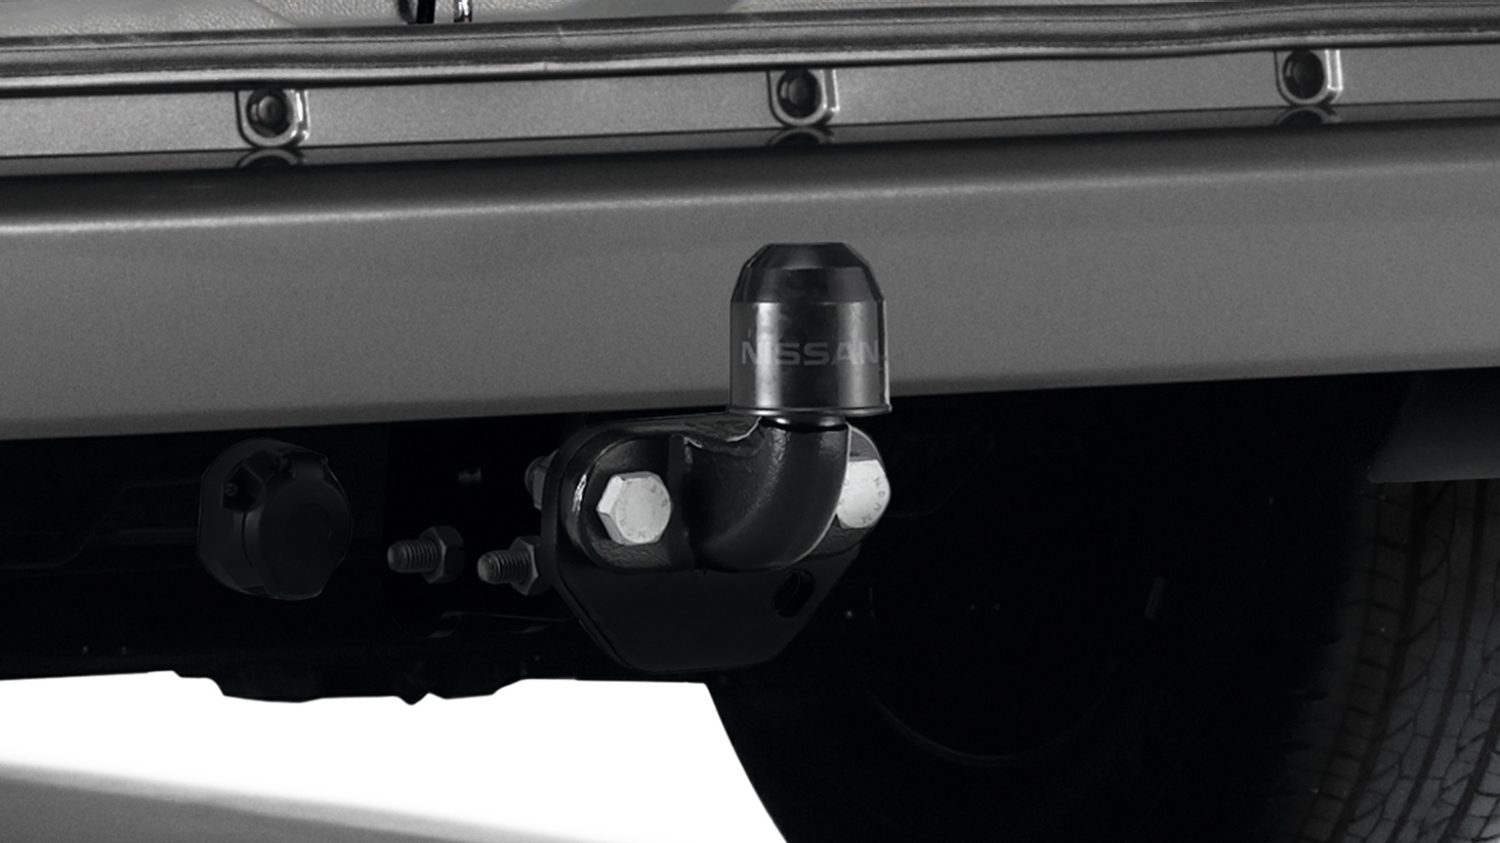 Nissan NV200 - Transportation - Flanged towbar